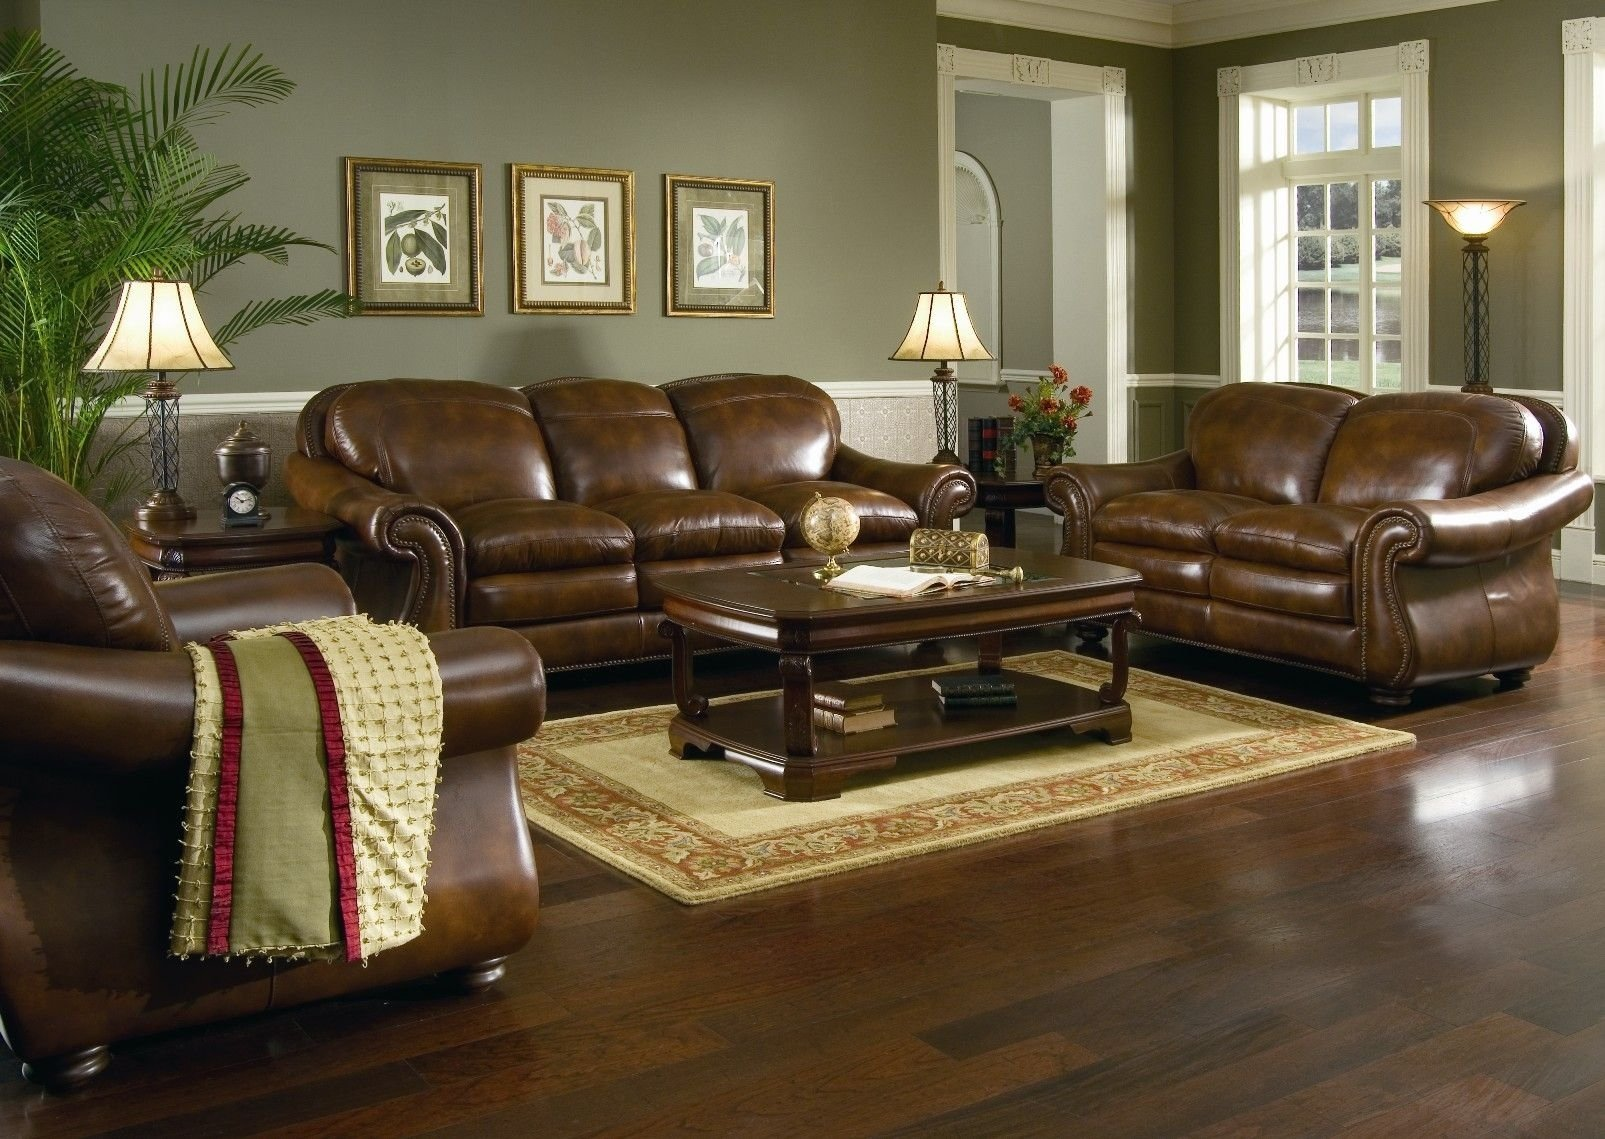 10 Lovable Leather Sofa Living Room Ideas